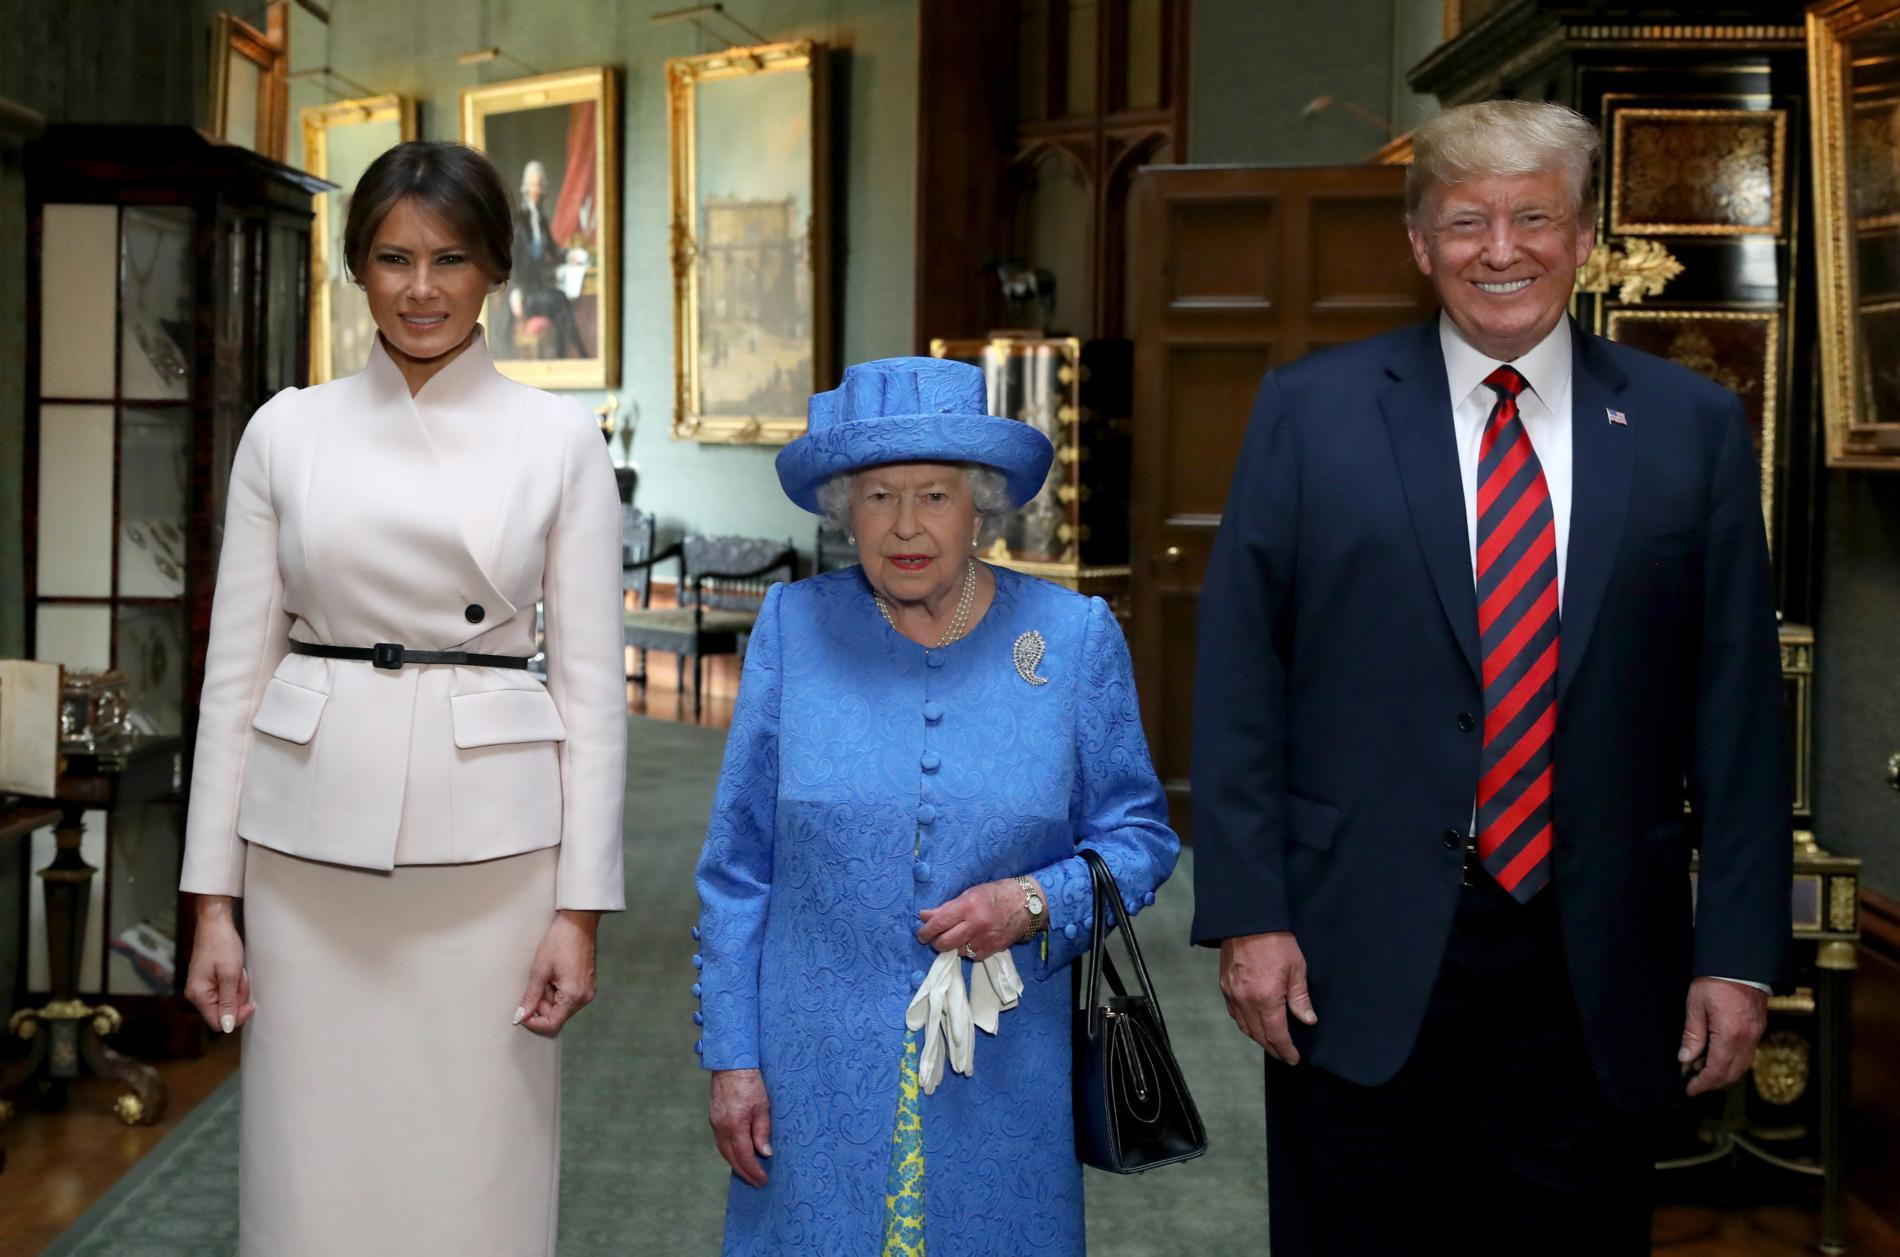 La rencontre entre elizabeth ii et les trump en images photo 7